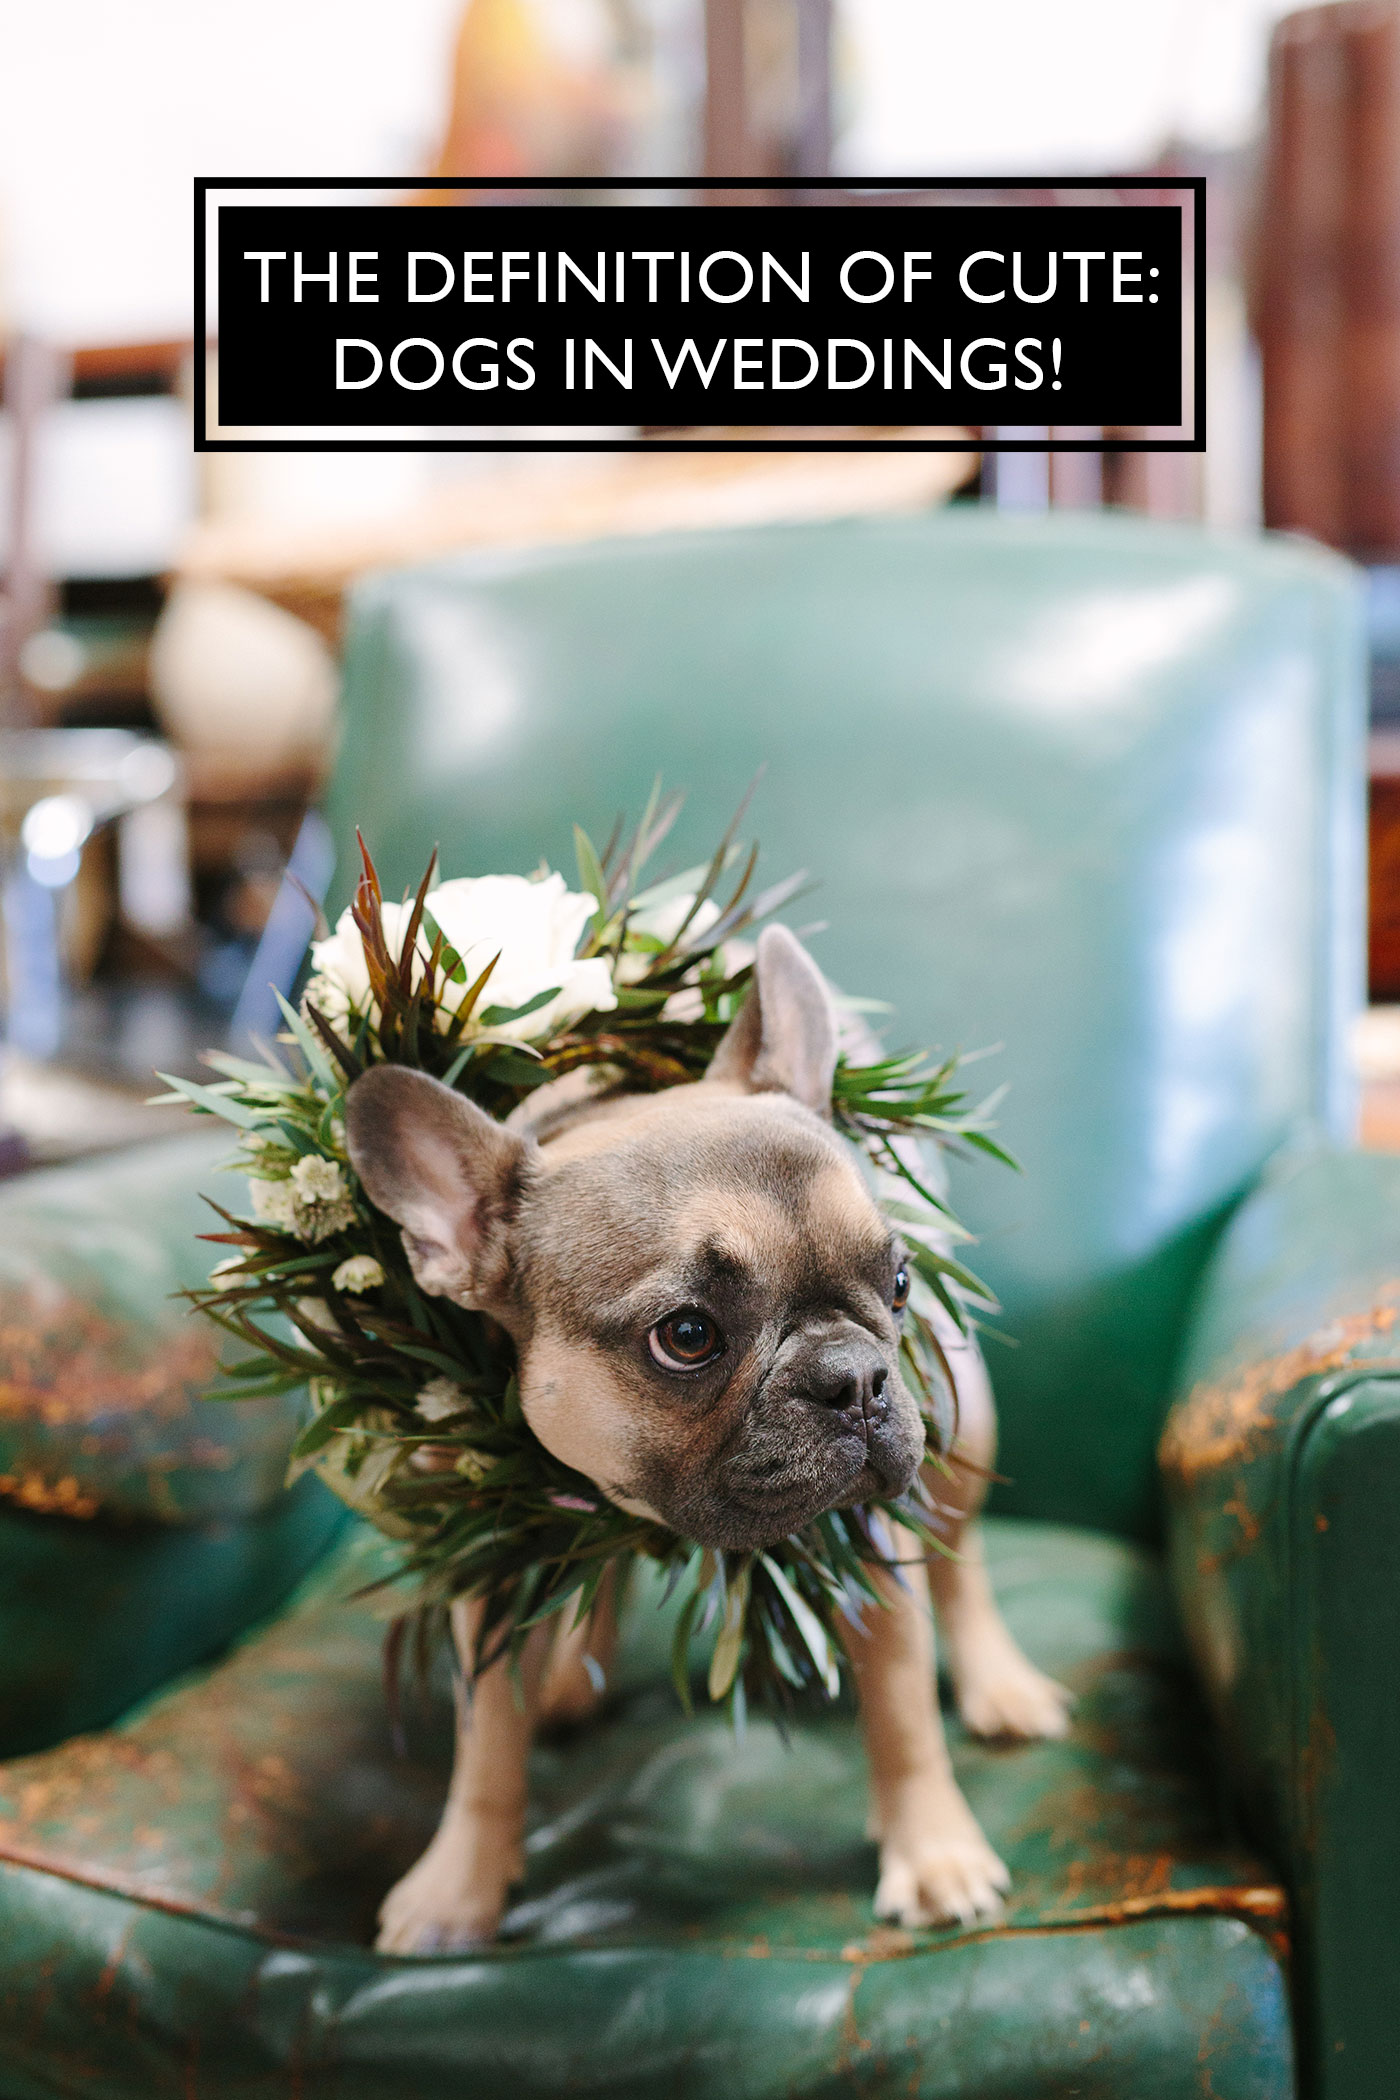 These dogs look cuter than us in weddings.